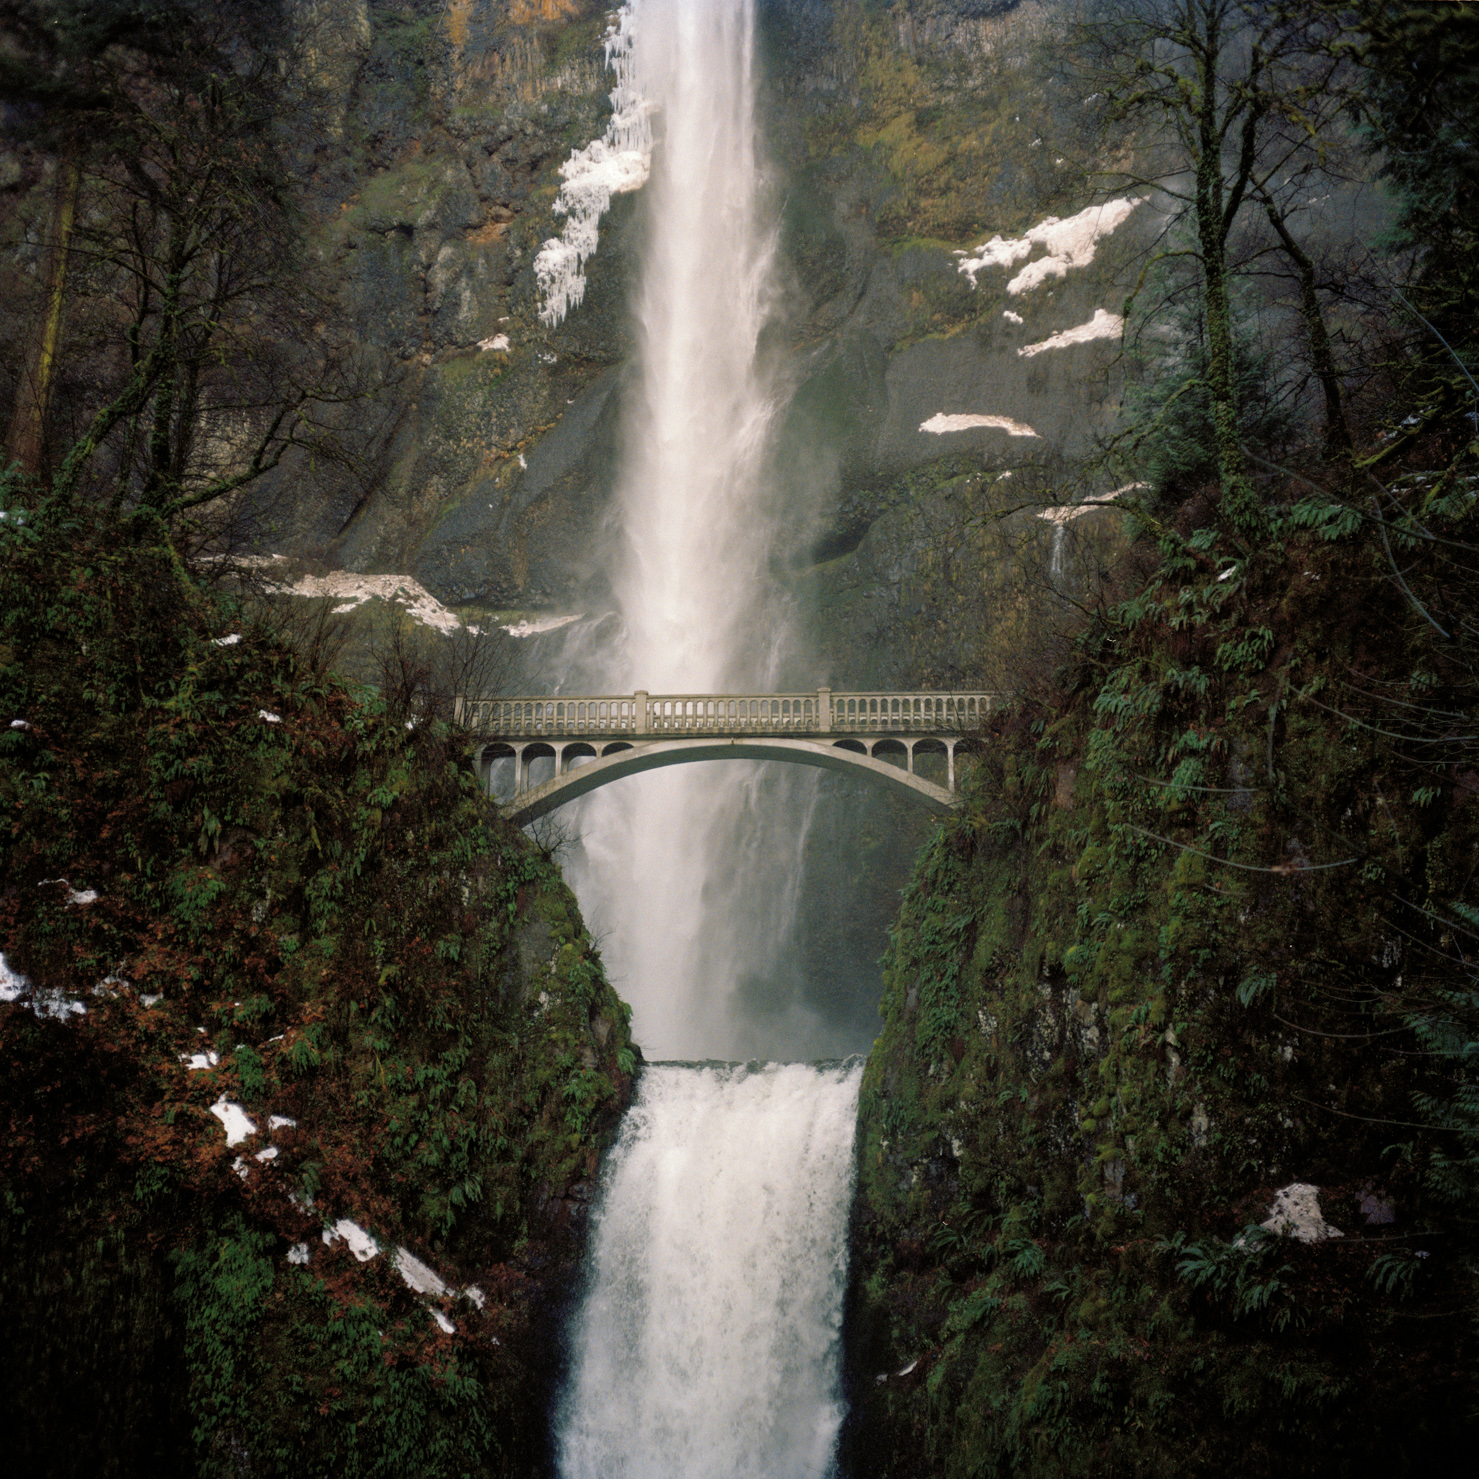 Visual imagery, film photos, multnomah falls